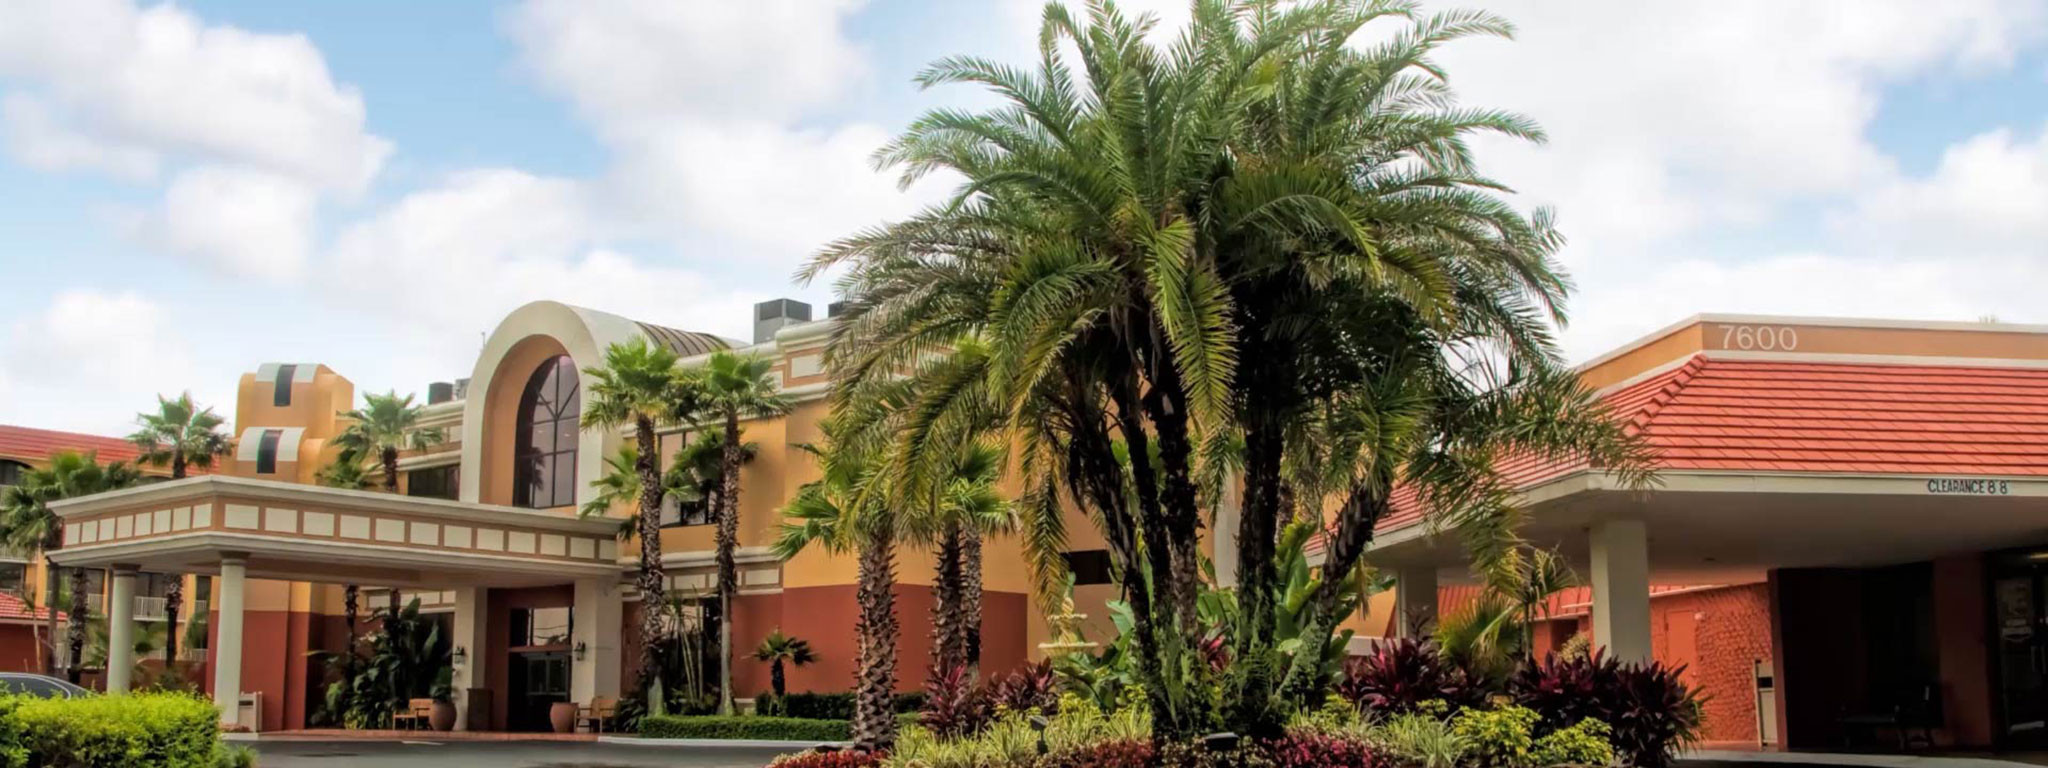 Westgate Towers Resort in Kissimmee, Florida, is a Disney area hotel that offers guests all the comforts of a fully furnished home with accommodations ranging from studios to spacious one- and two-bedroom villas, all within minutes of Orlando's world-famous theme parks and attractions. With a variety of onsite amenities, including three heated outdoor pools, your dream vacation is waiting at Westgate Towers Resort!